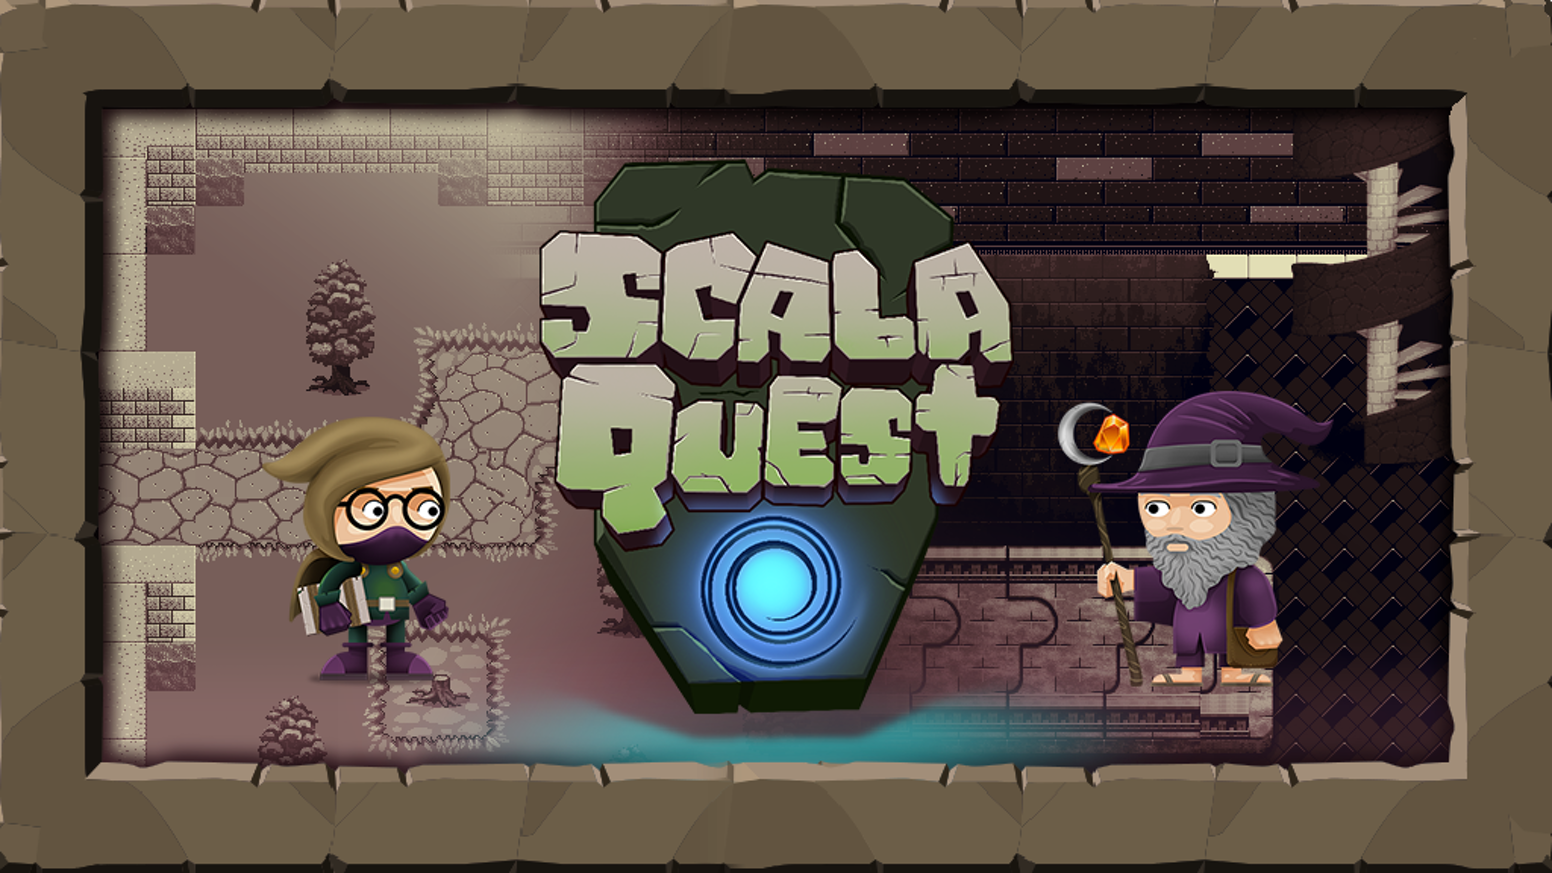 An online game to learn Scala. Battle Goblins and Wizards and face all kinds of challenges while learning a new programming language.